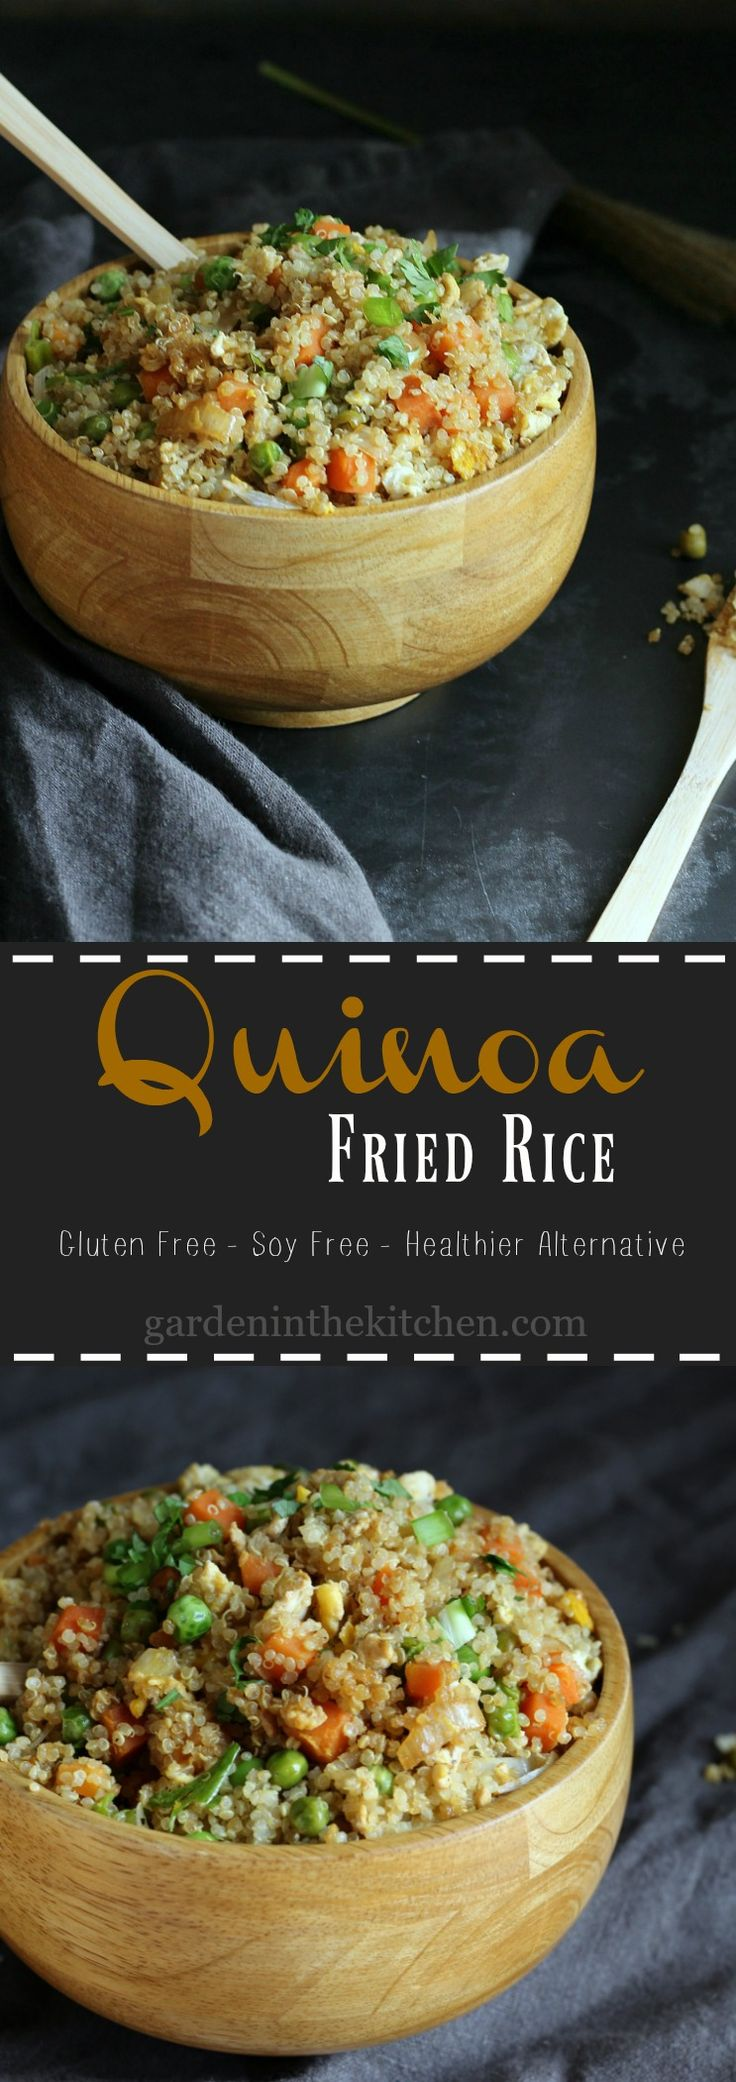 Quinoa Fried Rice (gluten-free, soy-free); a delicious and healthier alternative to the classic Chinese Fried Rice